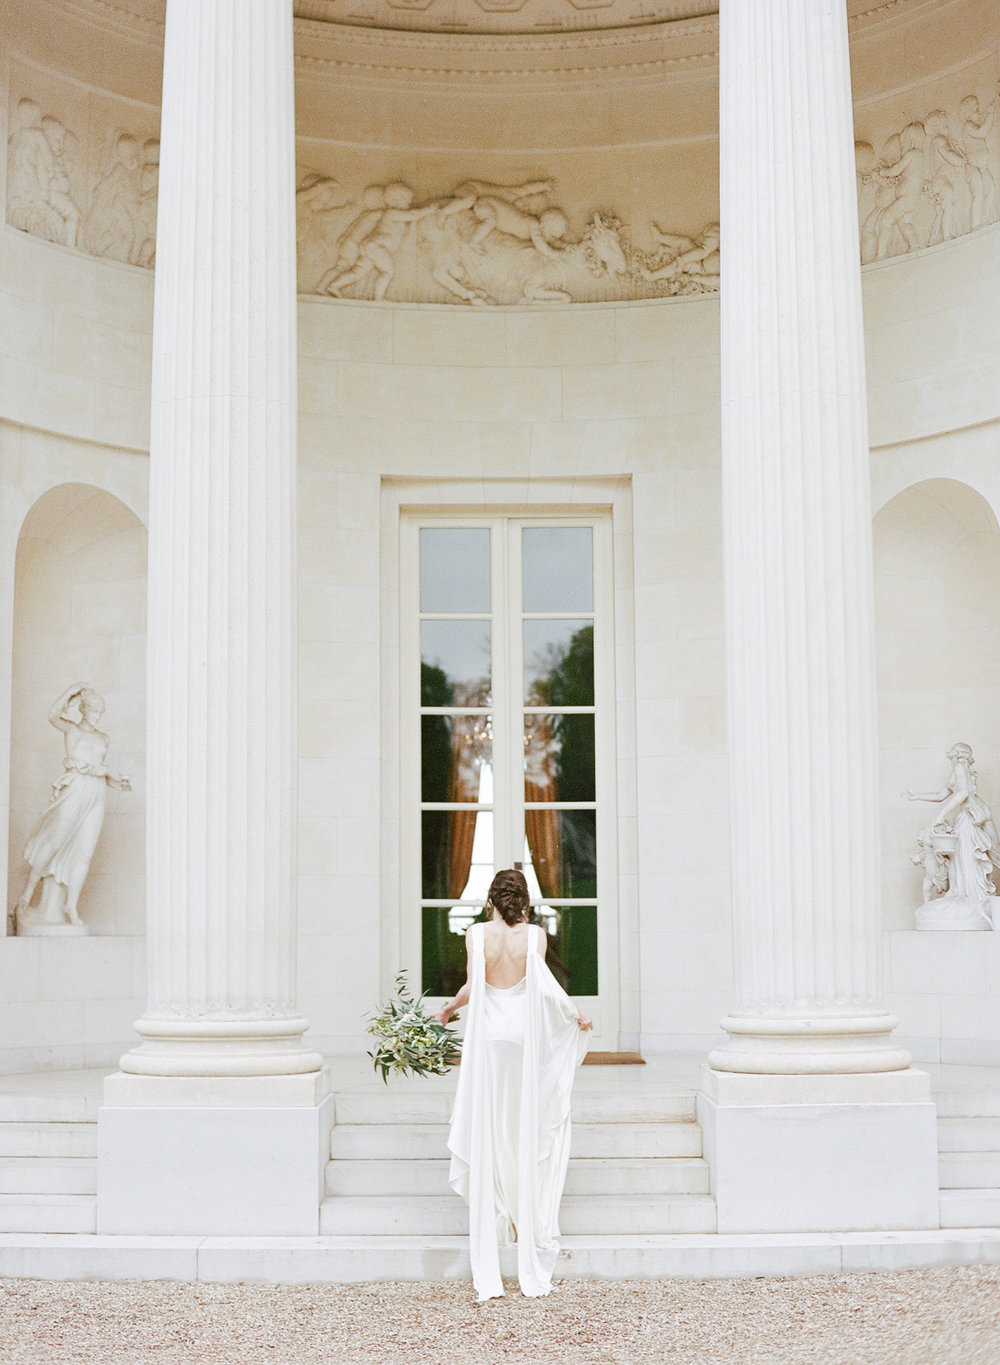 A bride walks up the steps to Pavillon de la Musique in Paris, France; Sylvie Gil Photography